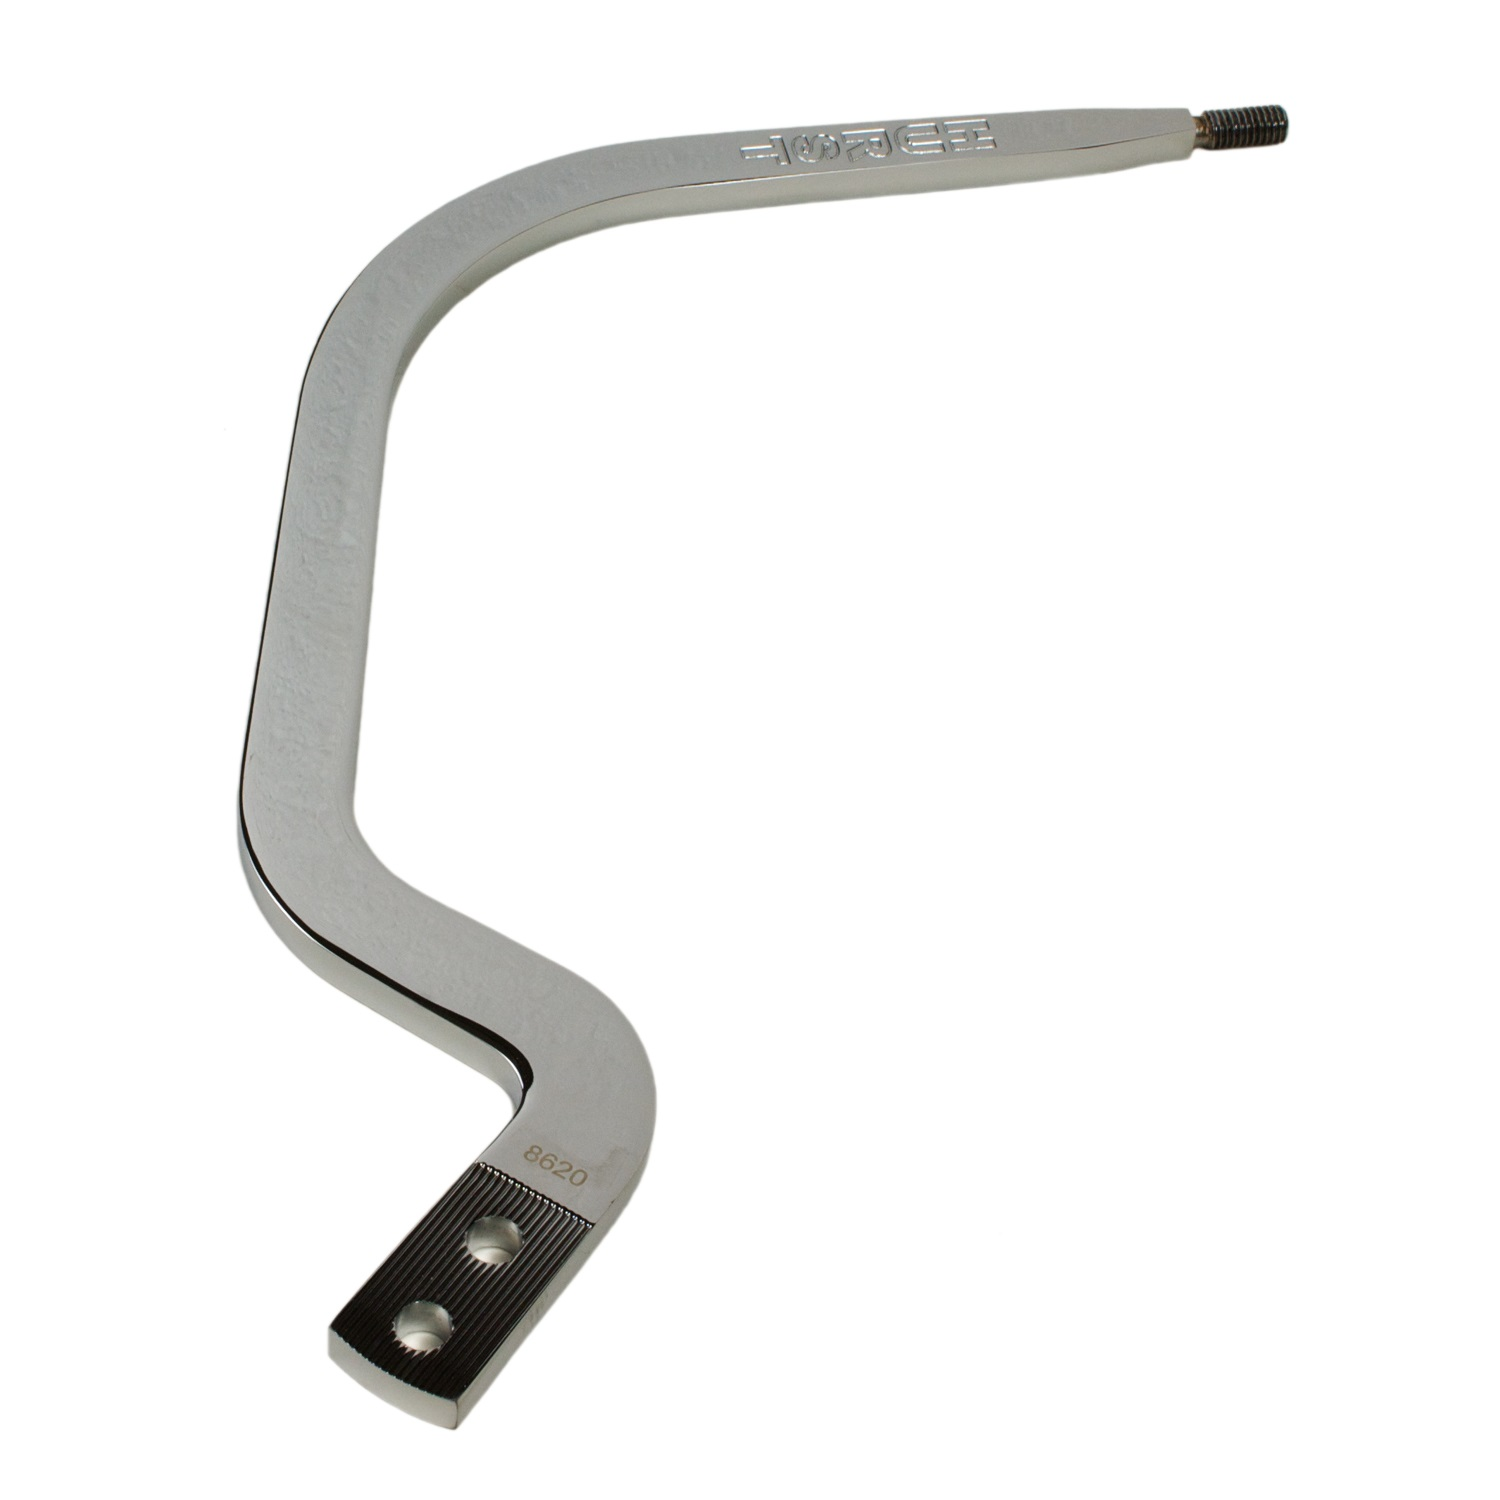 Marvelous photograph of Hurst 5388620 Bench Seat Manual Upper Stick; Long; Chromed Steel  with #282420 color and 1500x1500 pixels